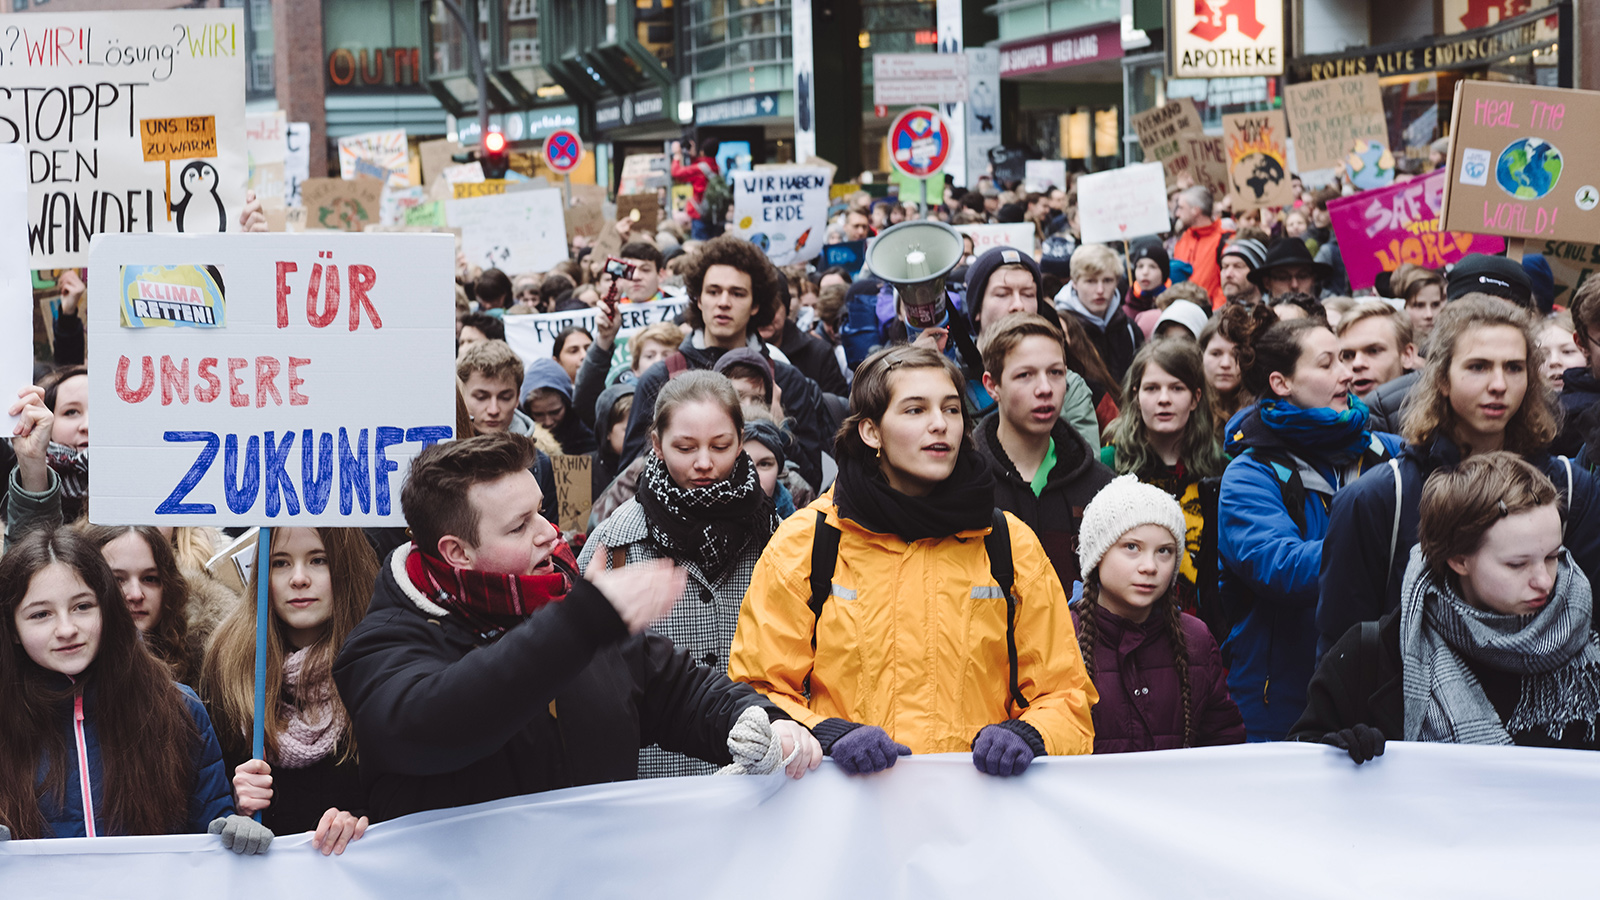 ecosia-joins-climate-strike-march-fridays-for-the-future-greta-thunberg